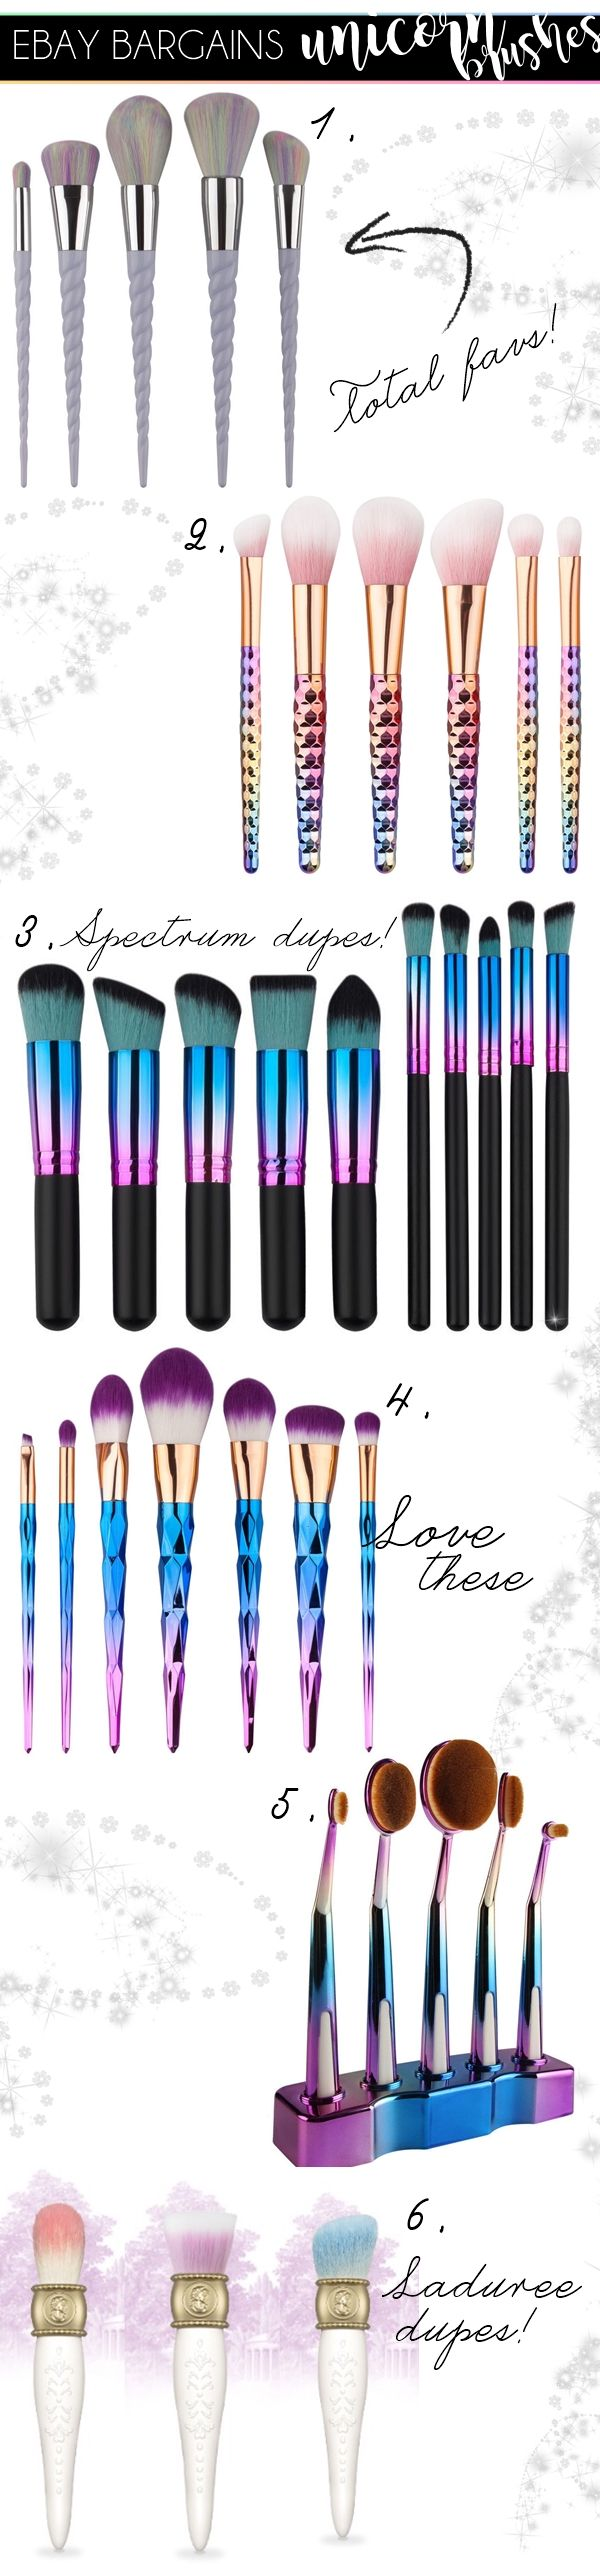 ebay-cheap-unicorn-makeup-brushes